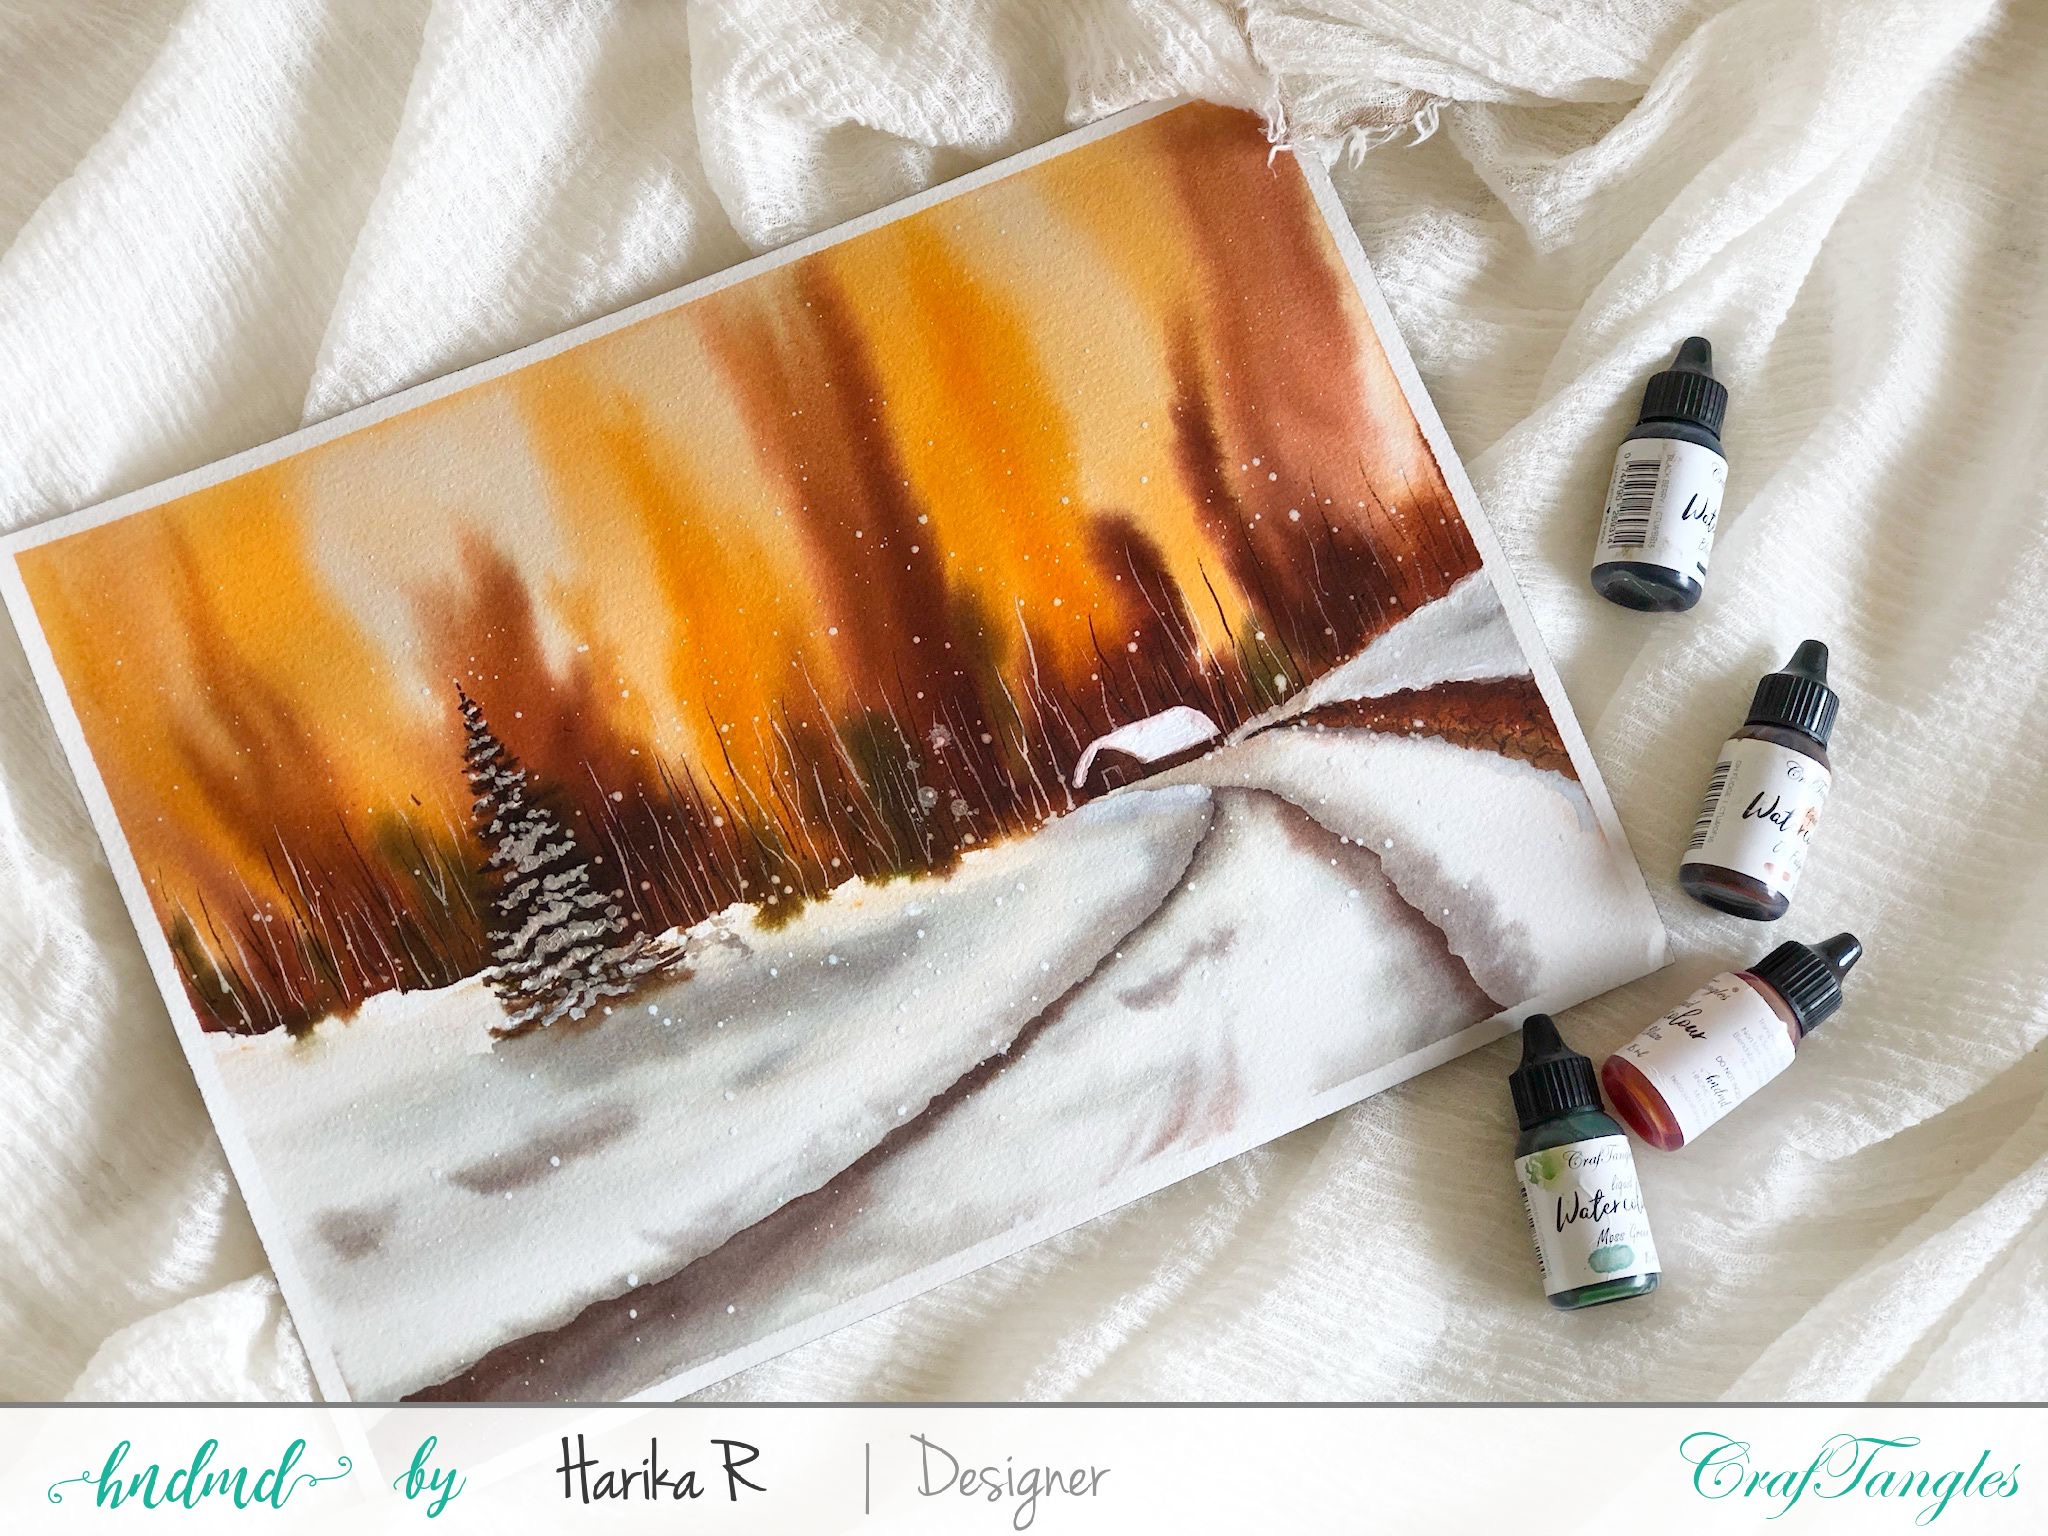 Watercolor Edition - Christmas with a beautiful view 3